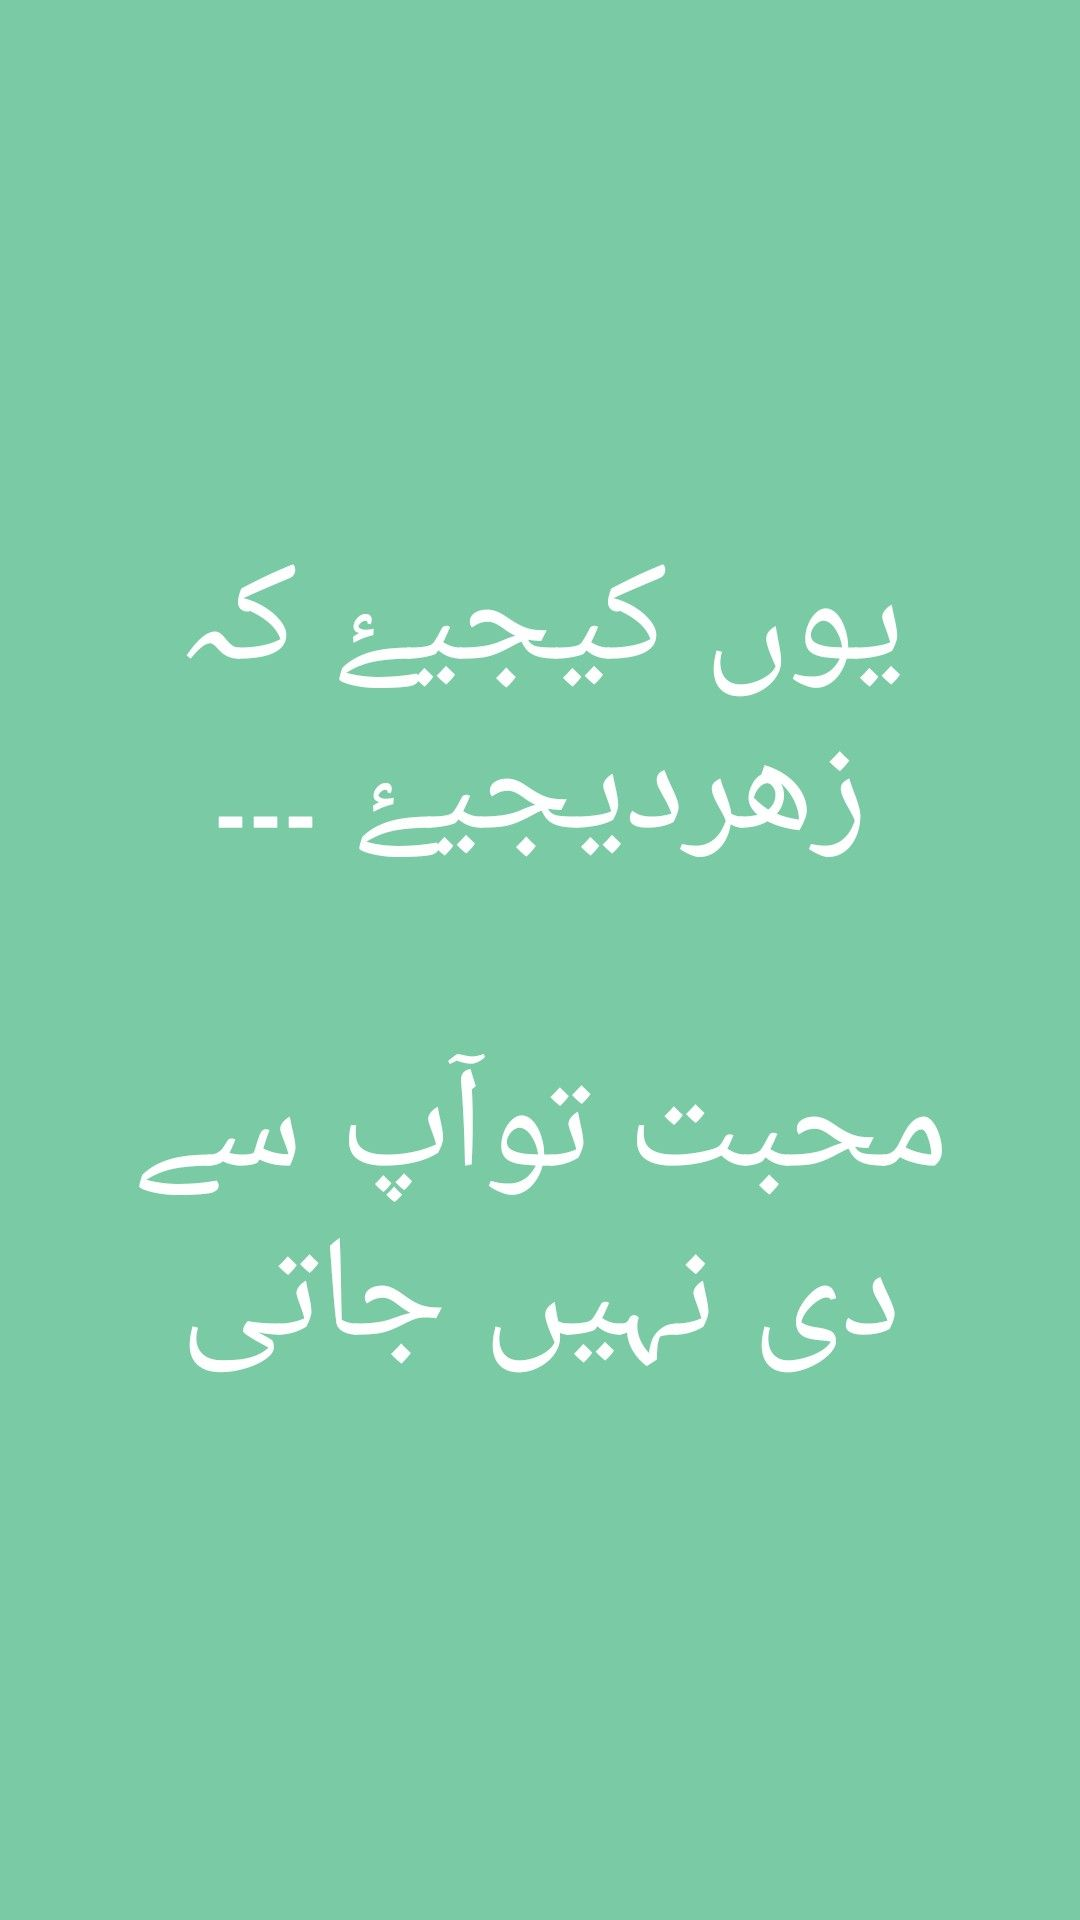 Pin by Ⓢⓐⓝⓘⓨⓐ Ⓢⓞⓝⓐ on Favourite | John elia poetry, Love ...